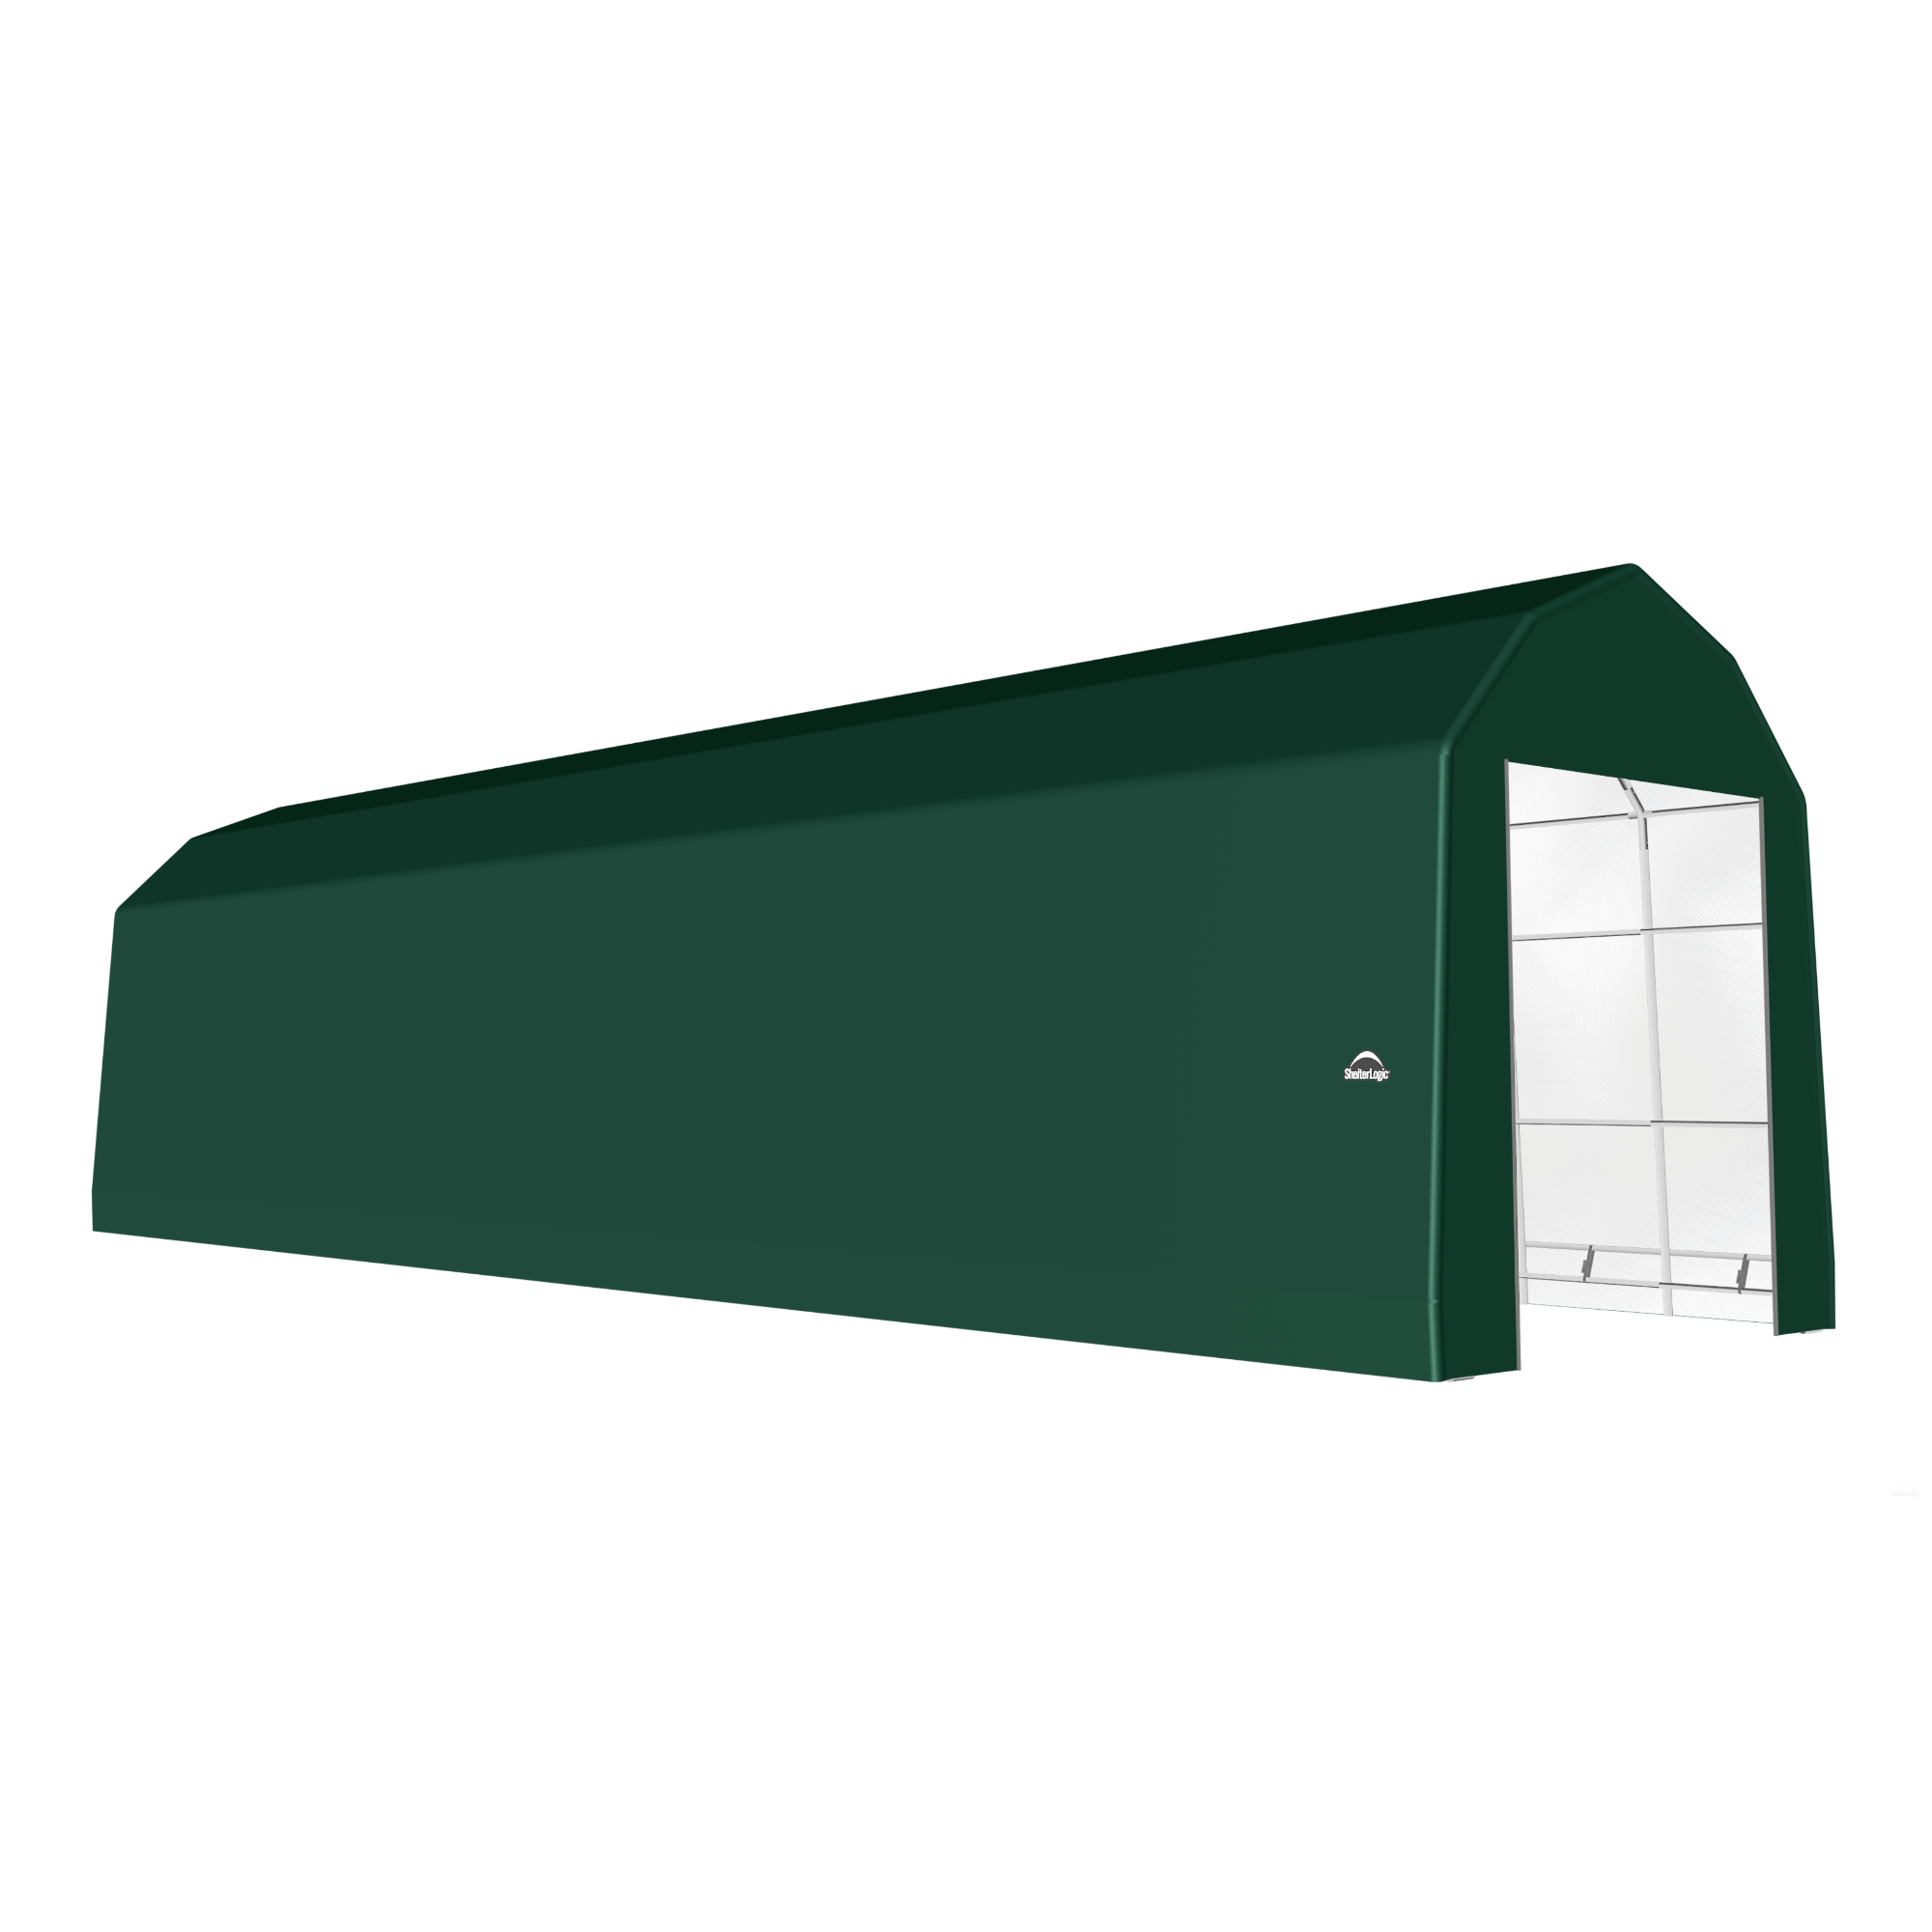 SP Barn 15X52X17 Green 14 oz PE Shelter